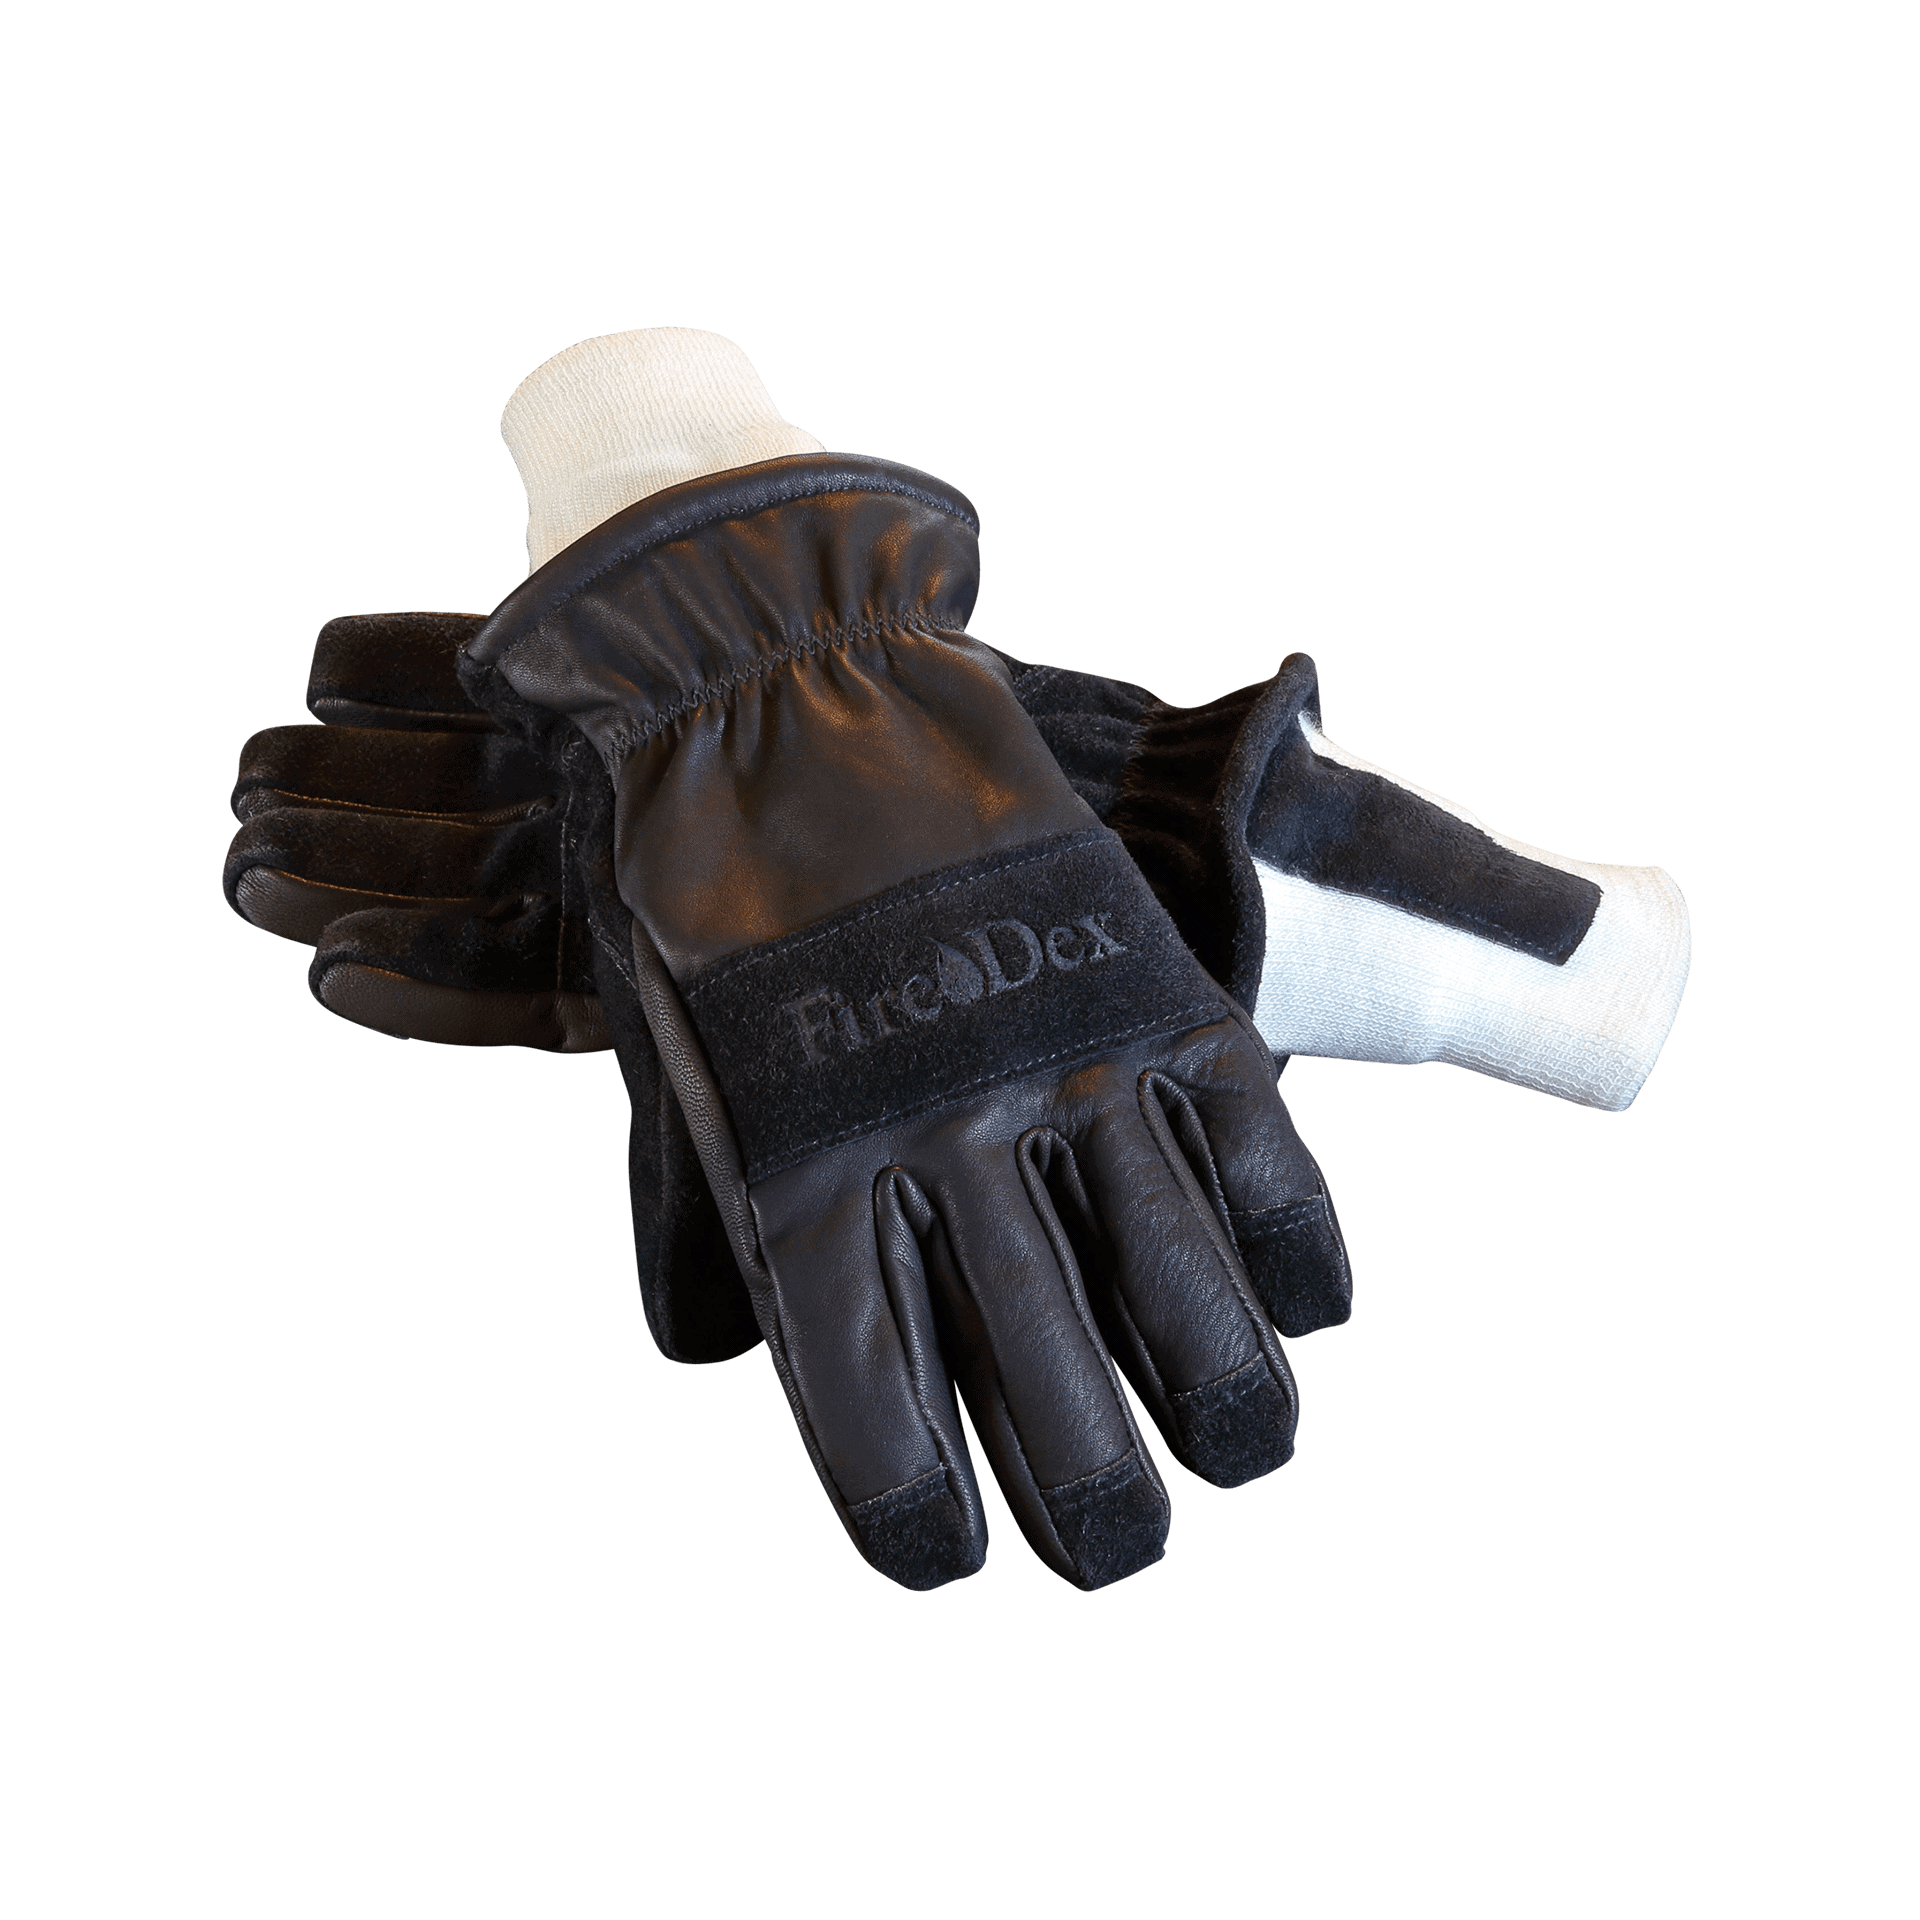 Fire-Dex Dex-Pro Gloves with knit wrists